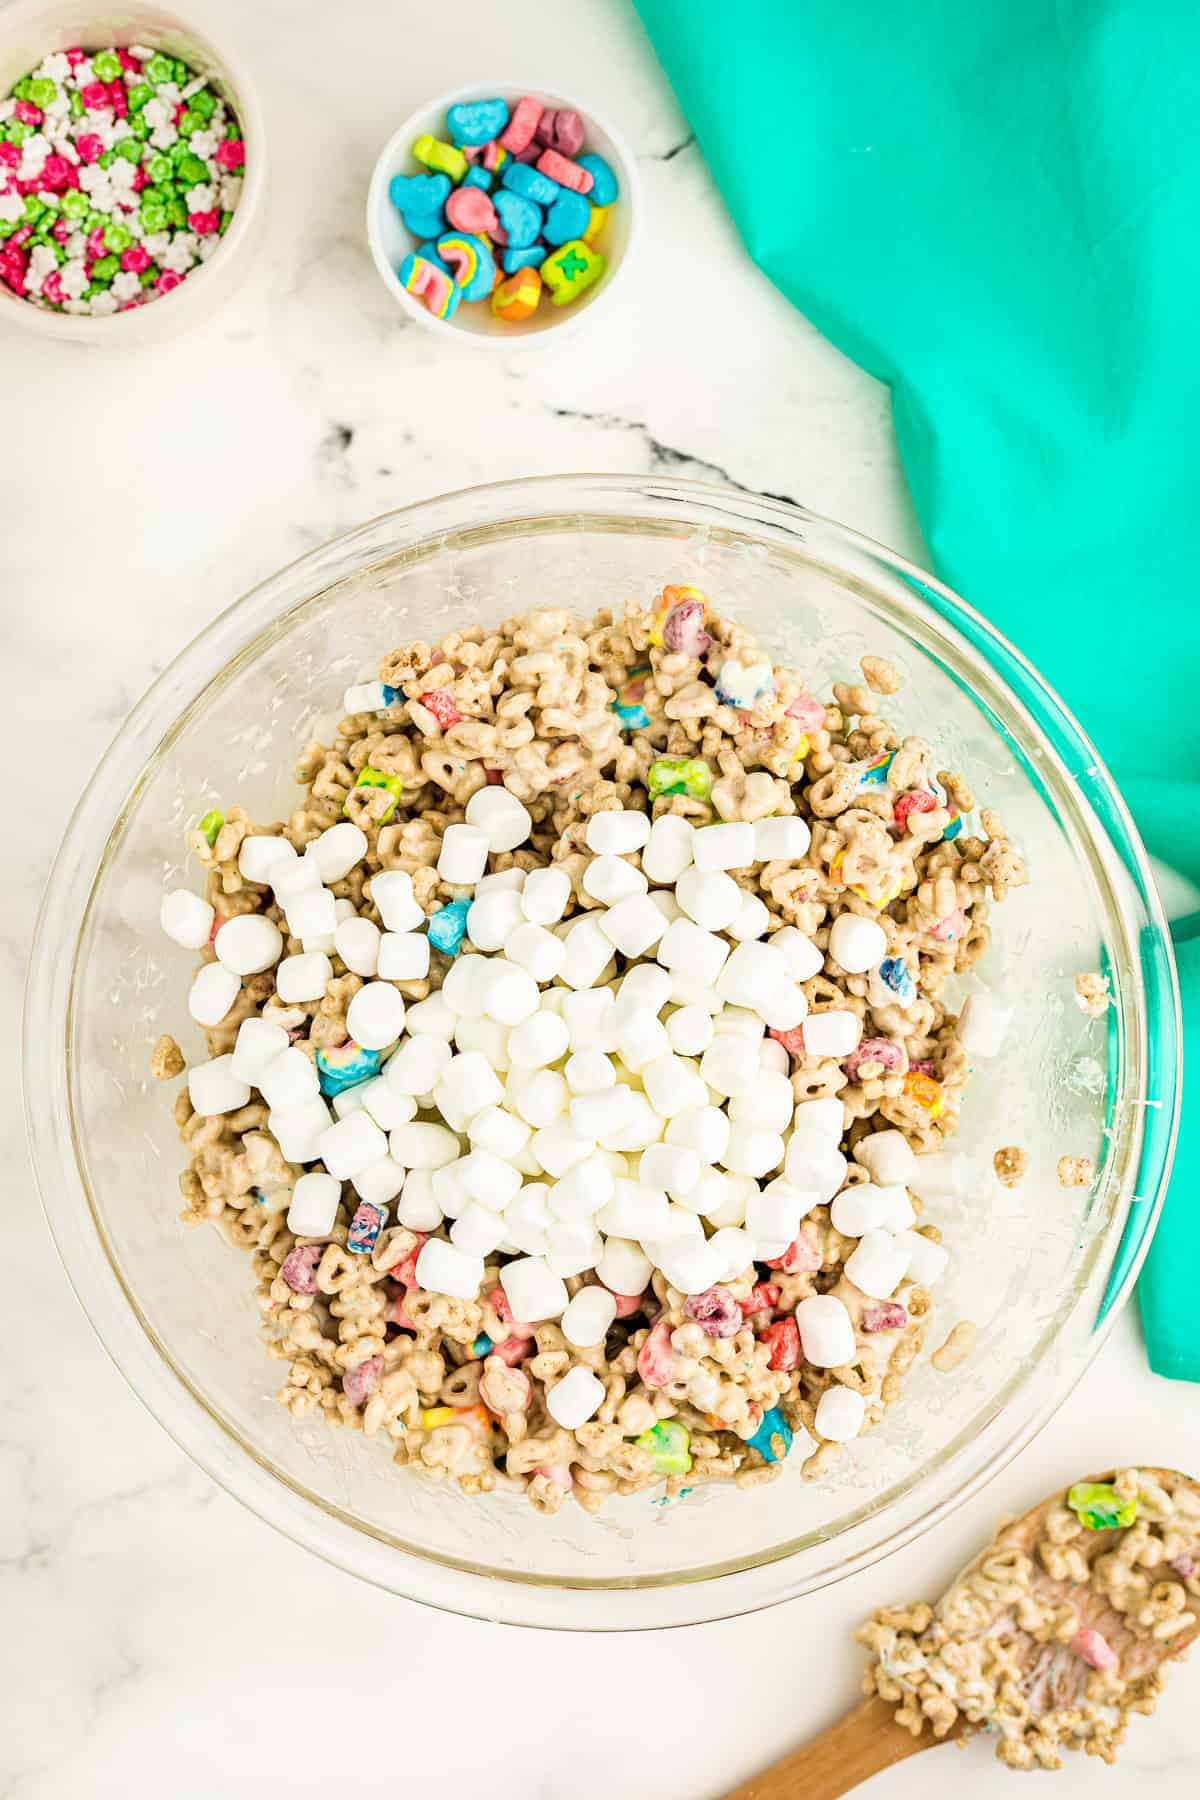 Overhead image of marshmallow and lucky charms mixture with extra mini marshmallows on top